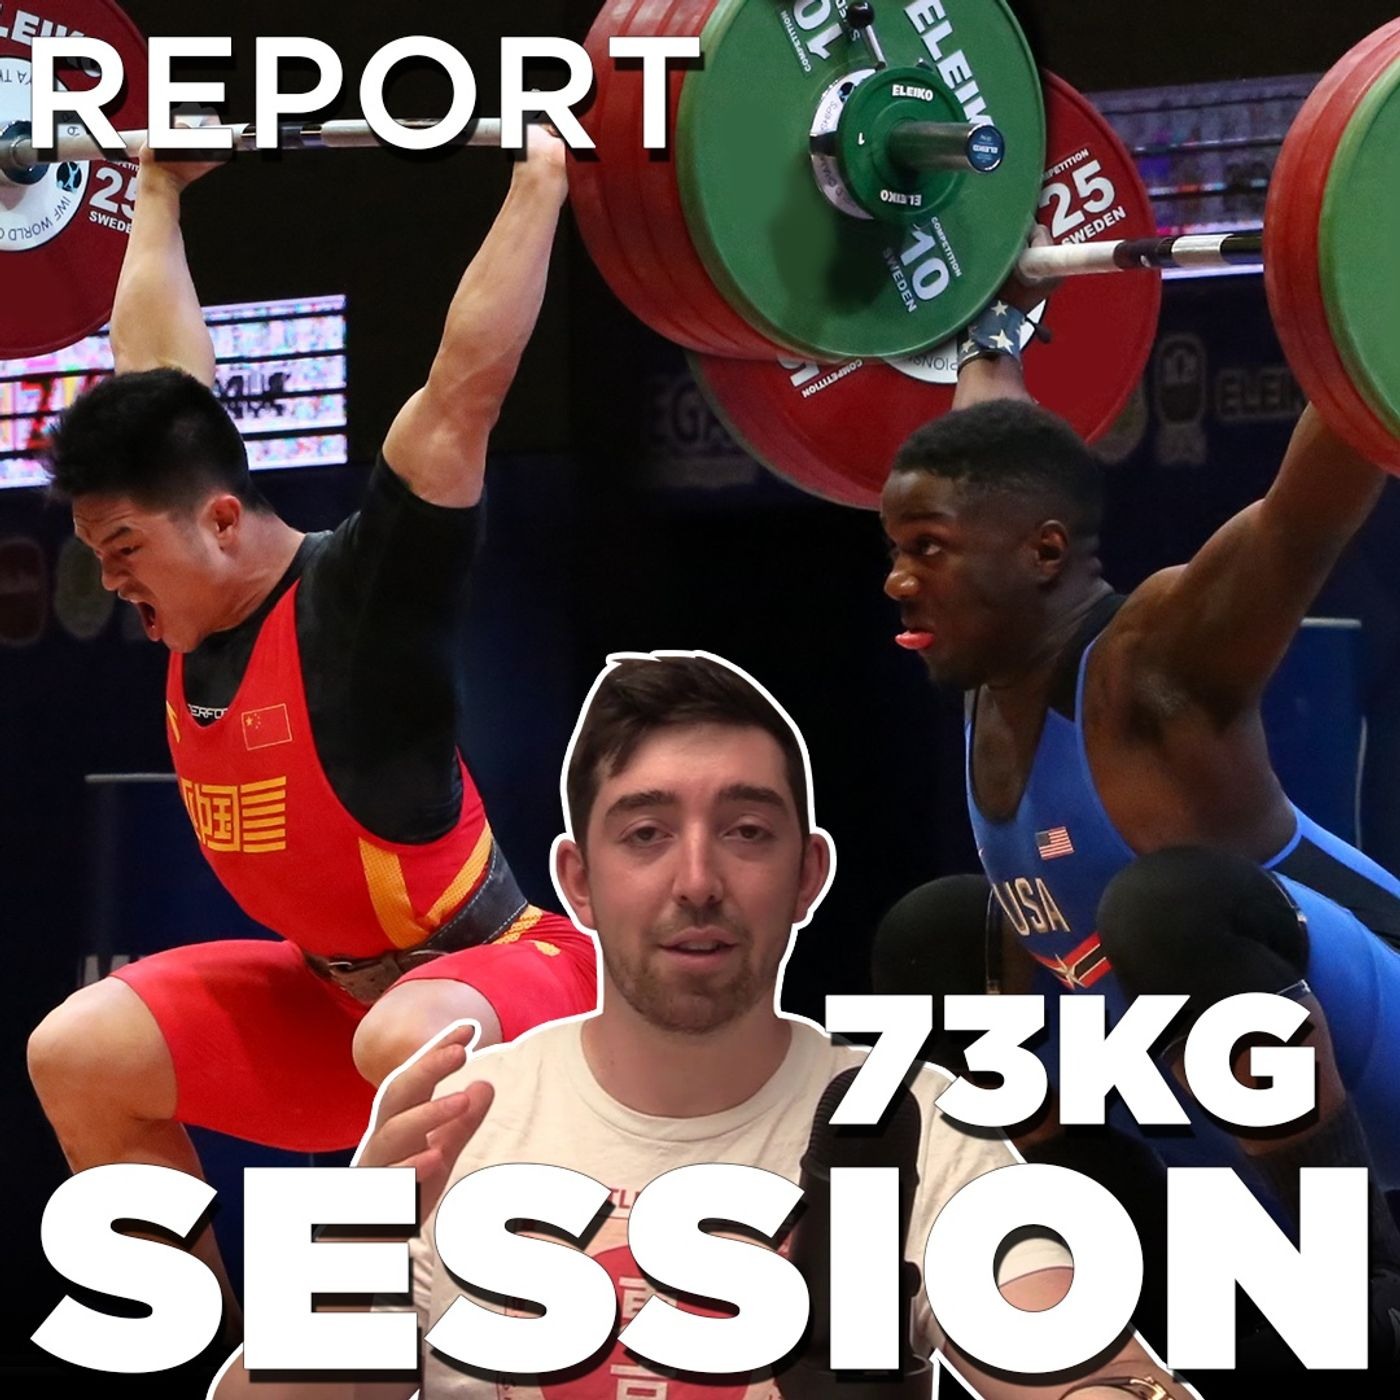 Tokyo Weightlifting M73 REPORT